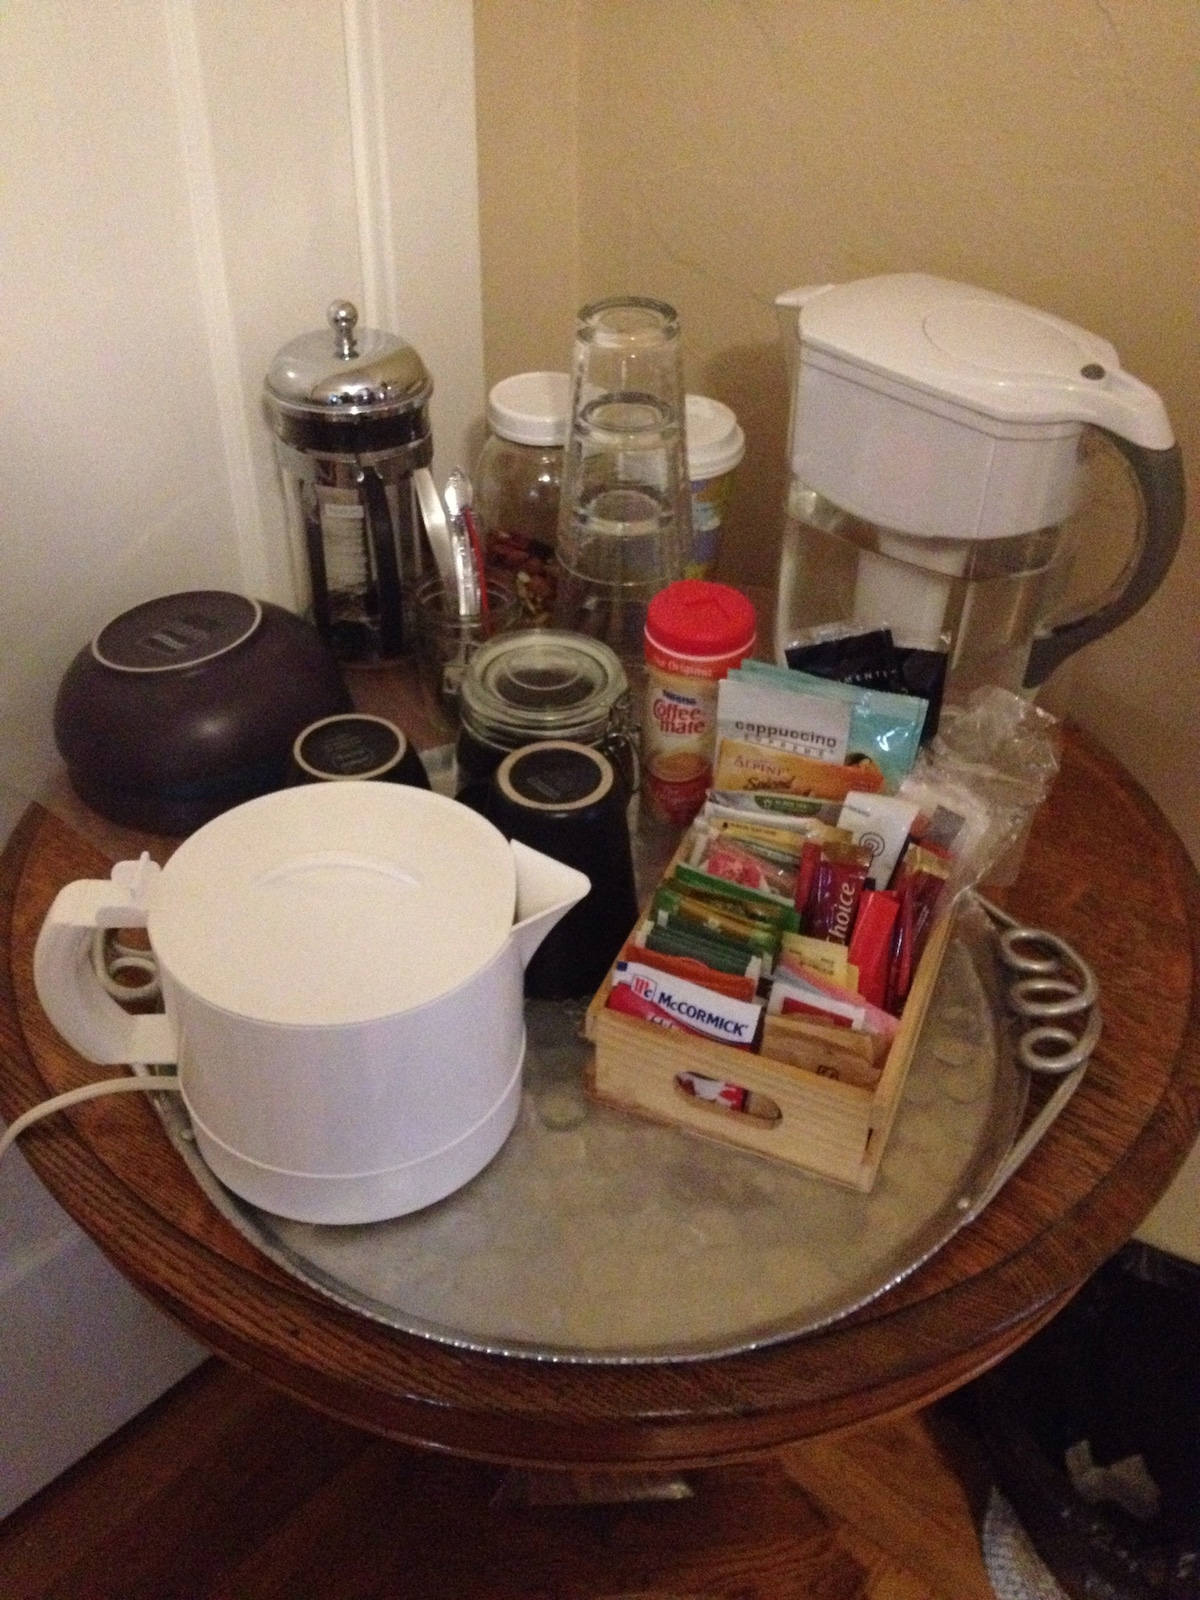 The room is equipped with coffee, tea, and seasonal goodies.